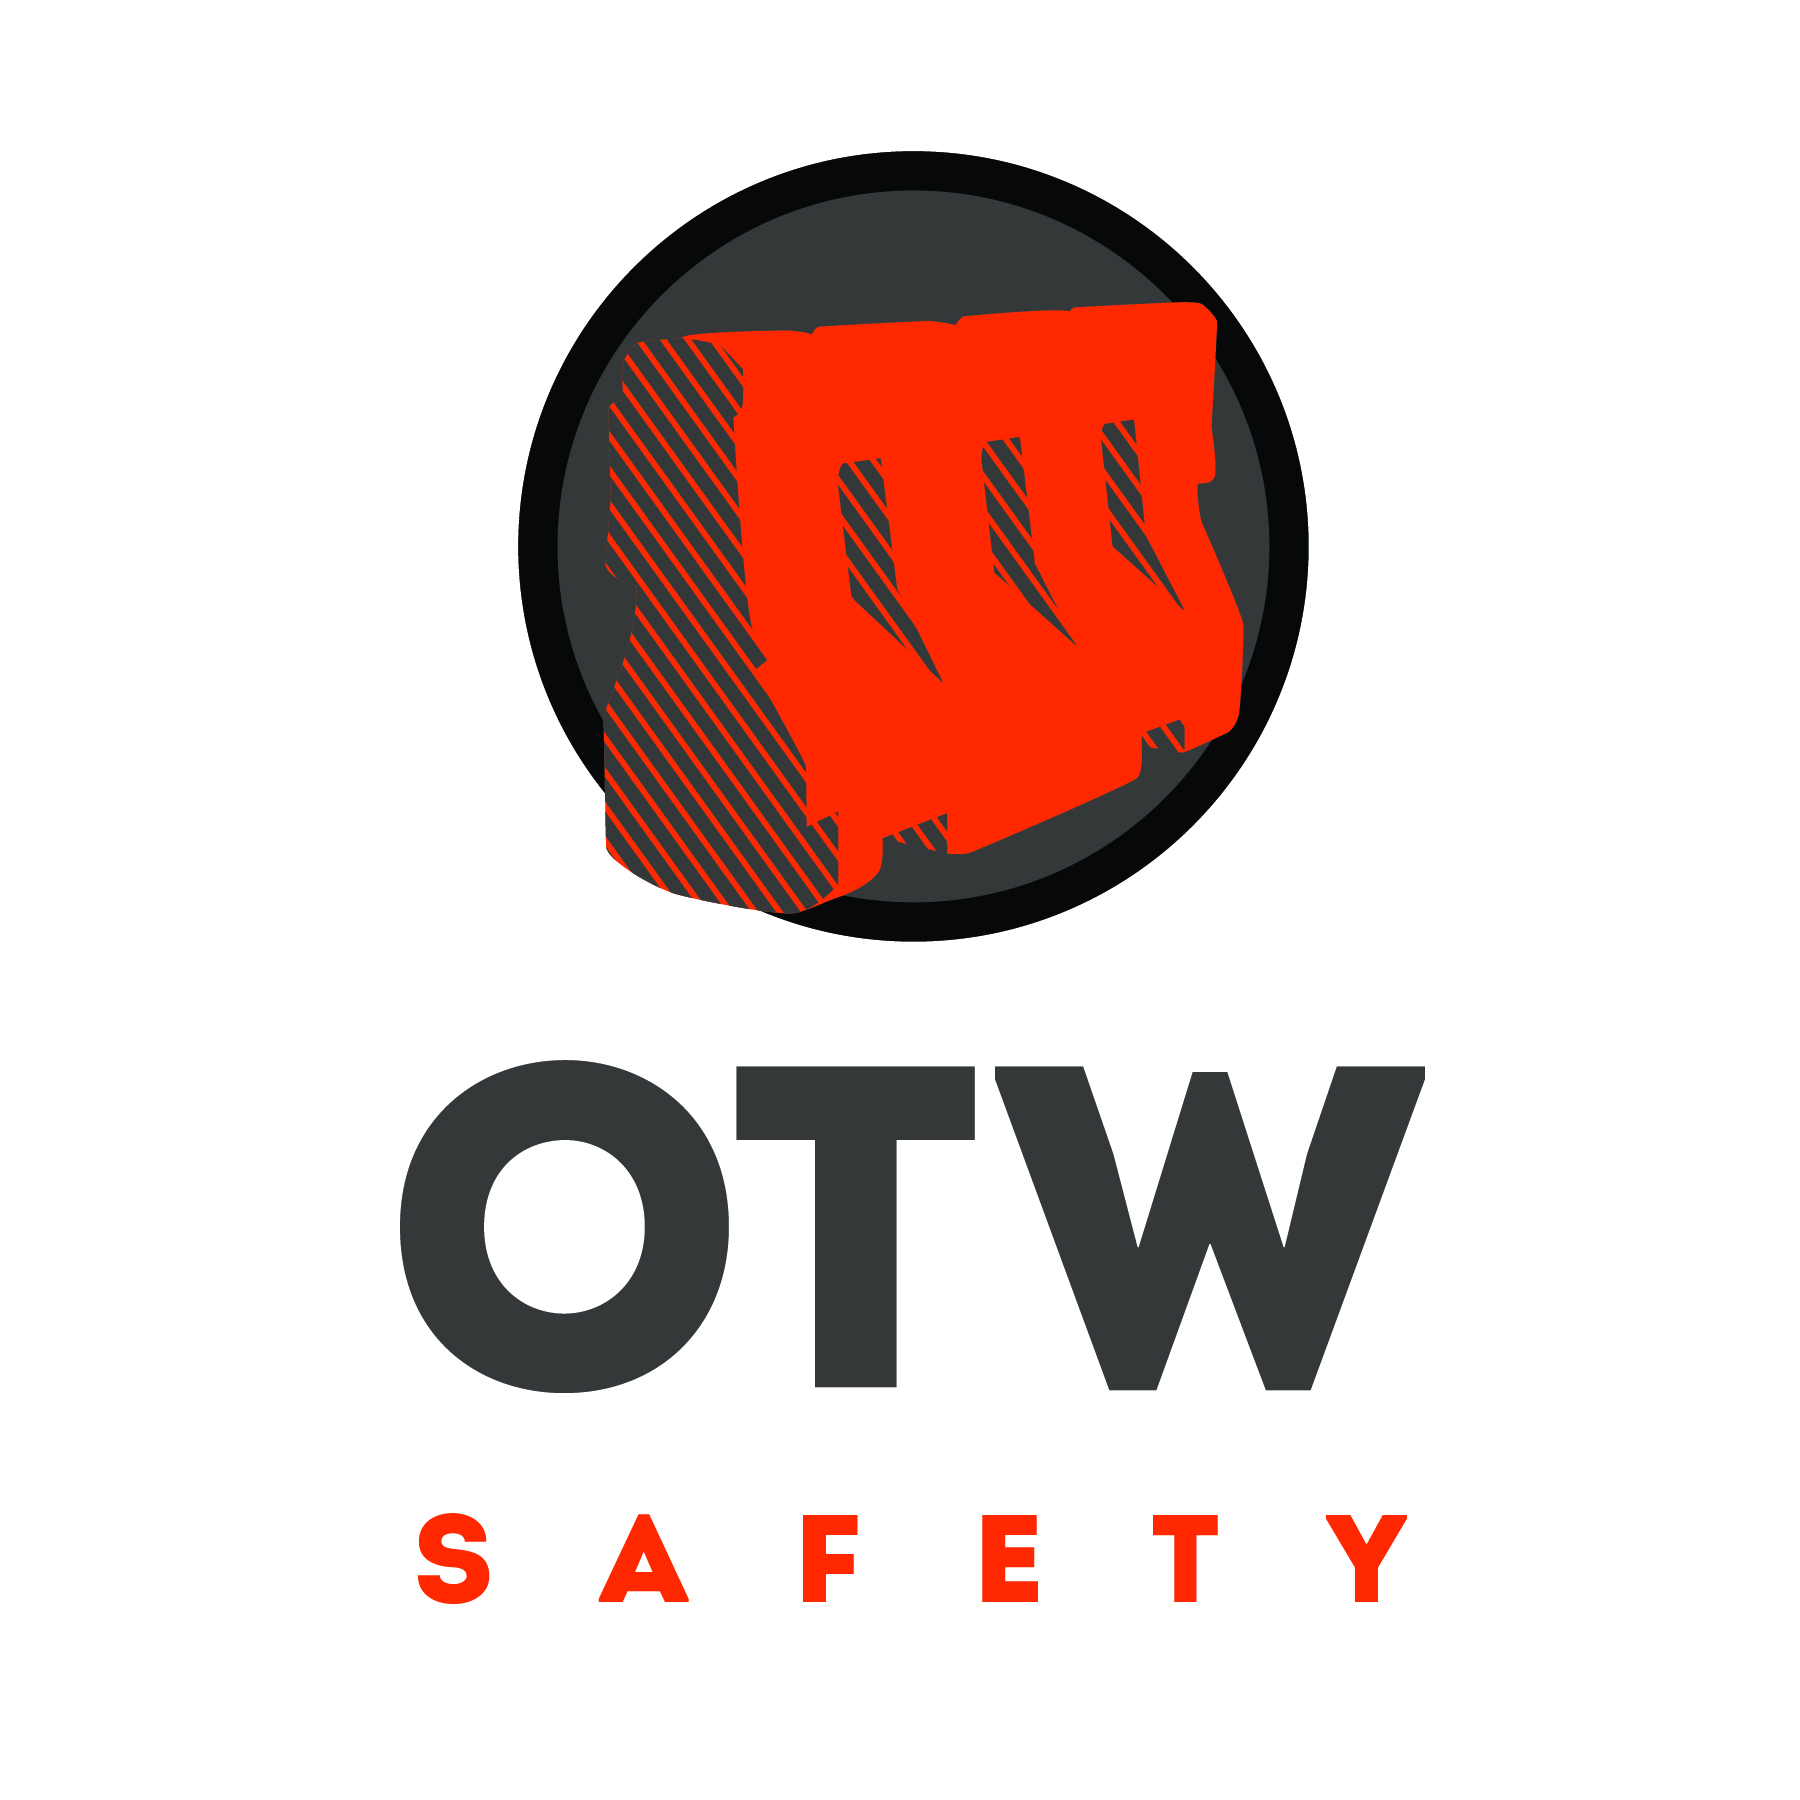 OTW_Safety_logo_vertical_CMYK